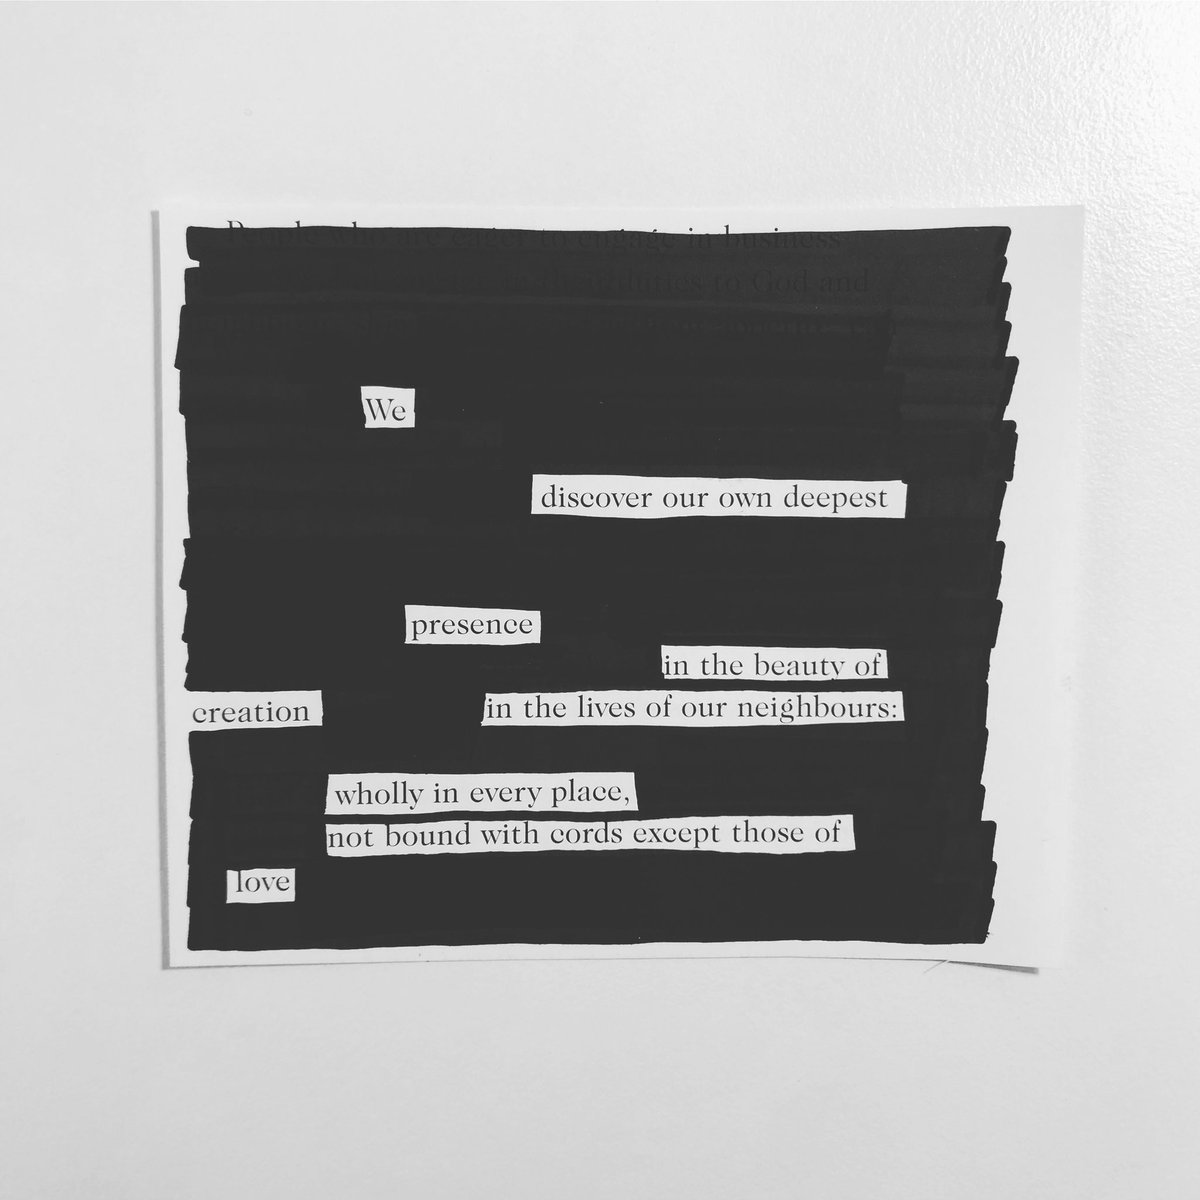 We discover our own deepest presence in the beauty of creation in the lives of our neighbours: wholly in every place, not bound with cords except those of love  #blackoutpoetry #blackoutpoem #quarantineart #blackandwhite #deep #presence #beauty #creation #neighbors #whole #love https://t.co/Hg03On7Mb5